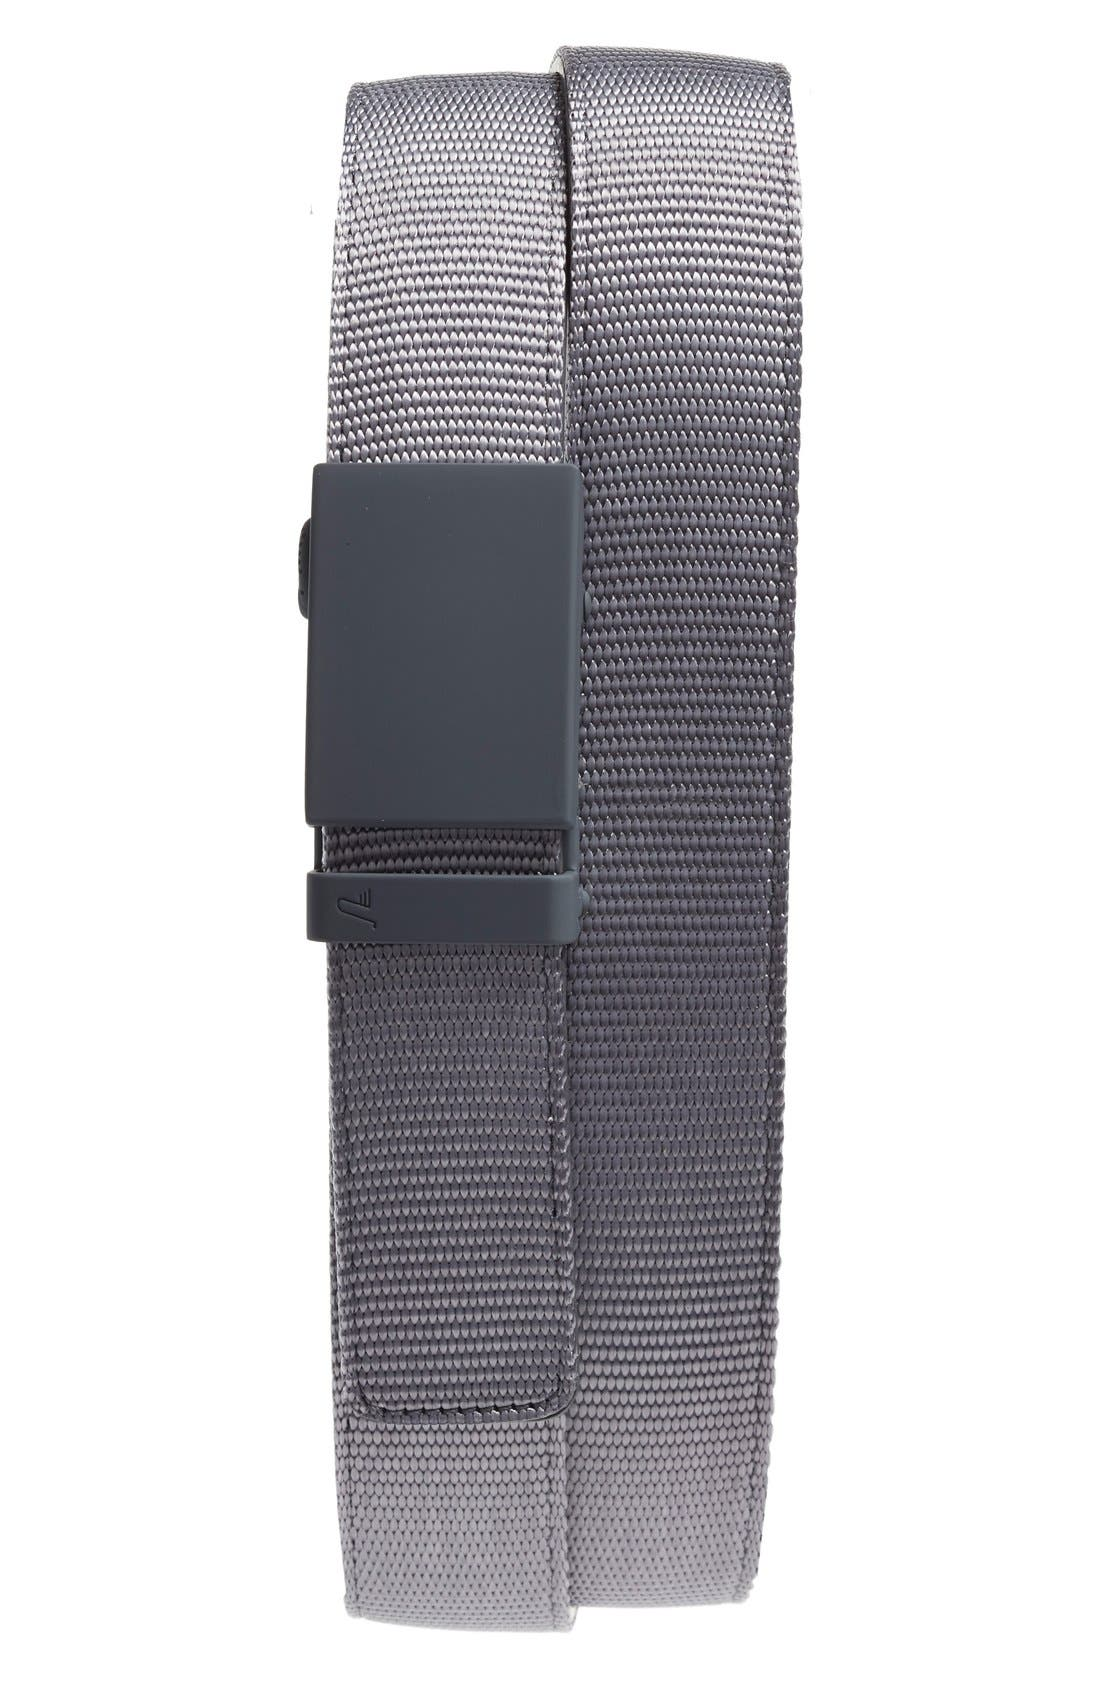 Main Image - Mission Belt Nylon Belt